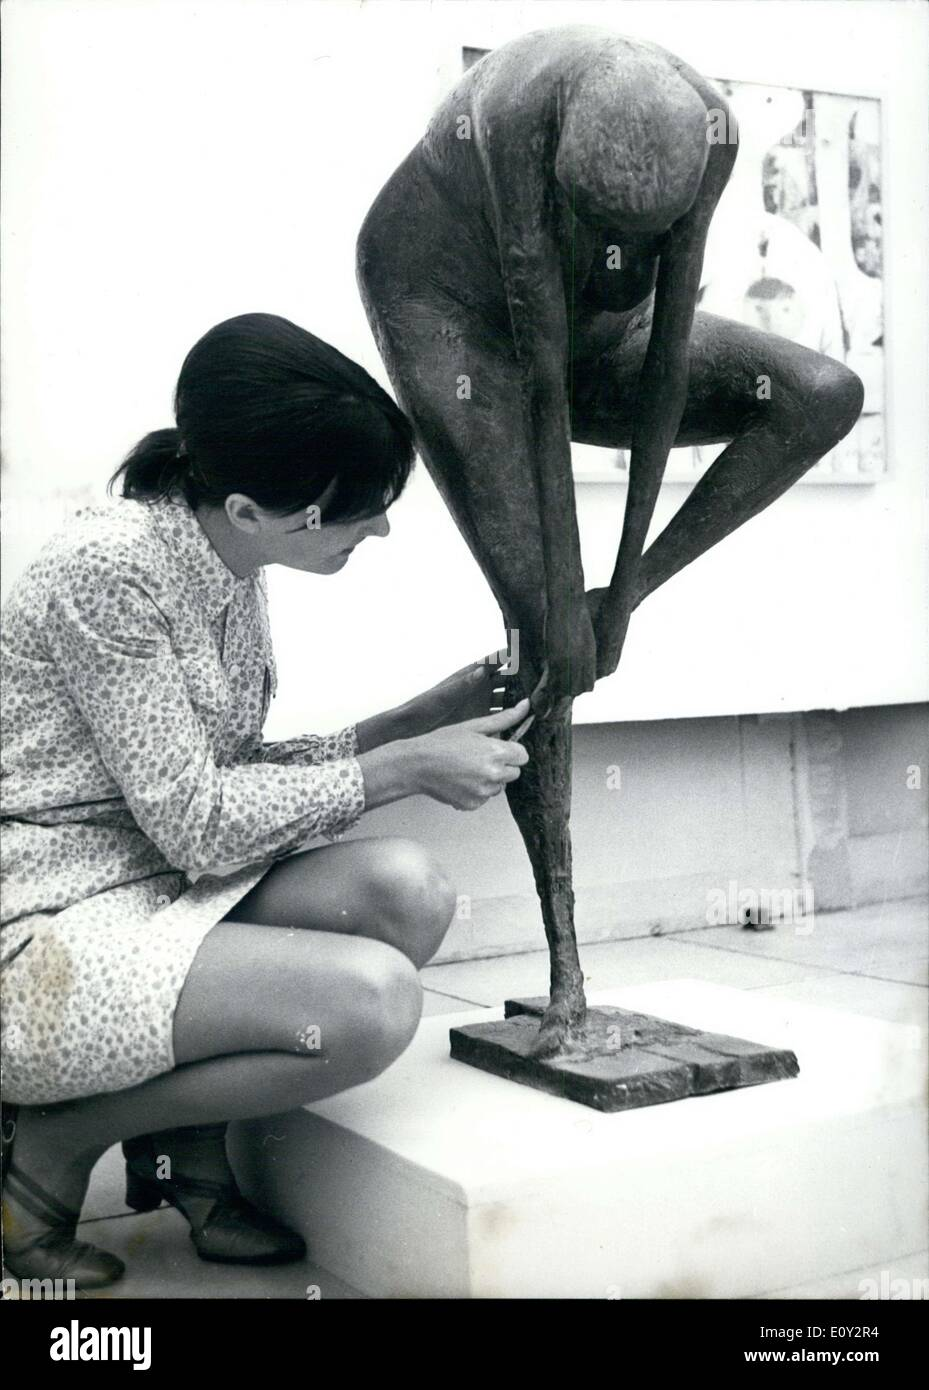 Jun. 10, 1968 - This 110x45cm sculpture by Berlin sculptor Waldemar Otto was one of many on display at a large art exhibition in Munich, where over 1,000 pieces of art were shown. - Stock Image